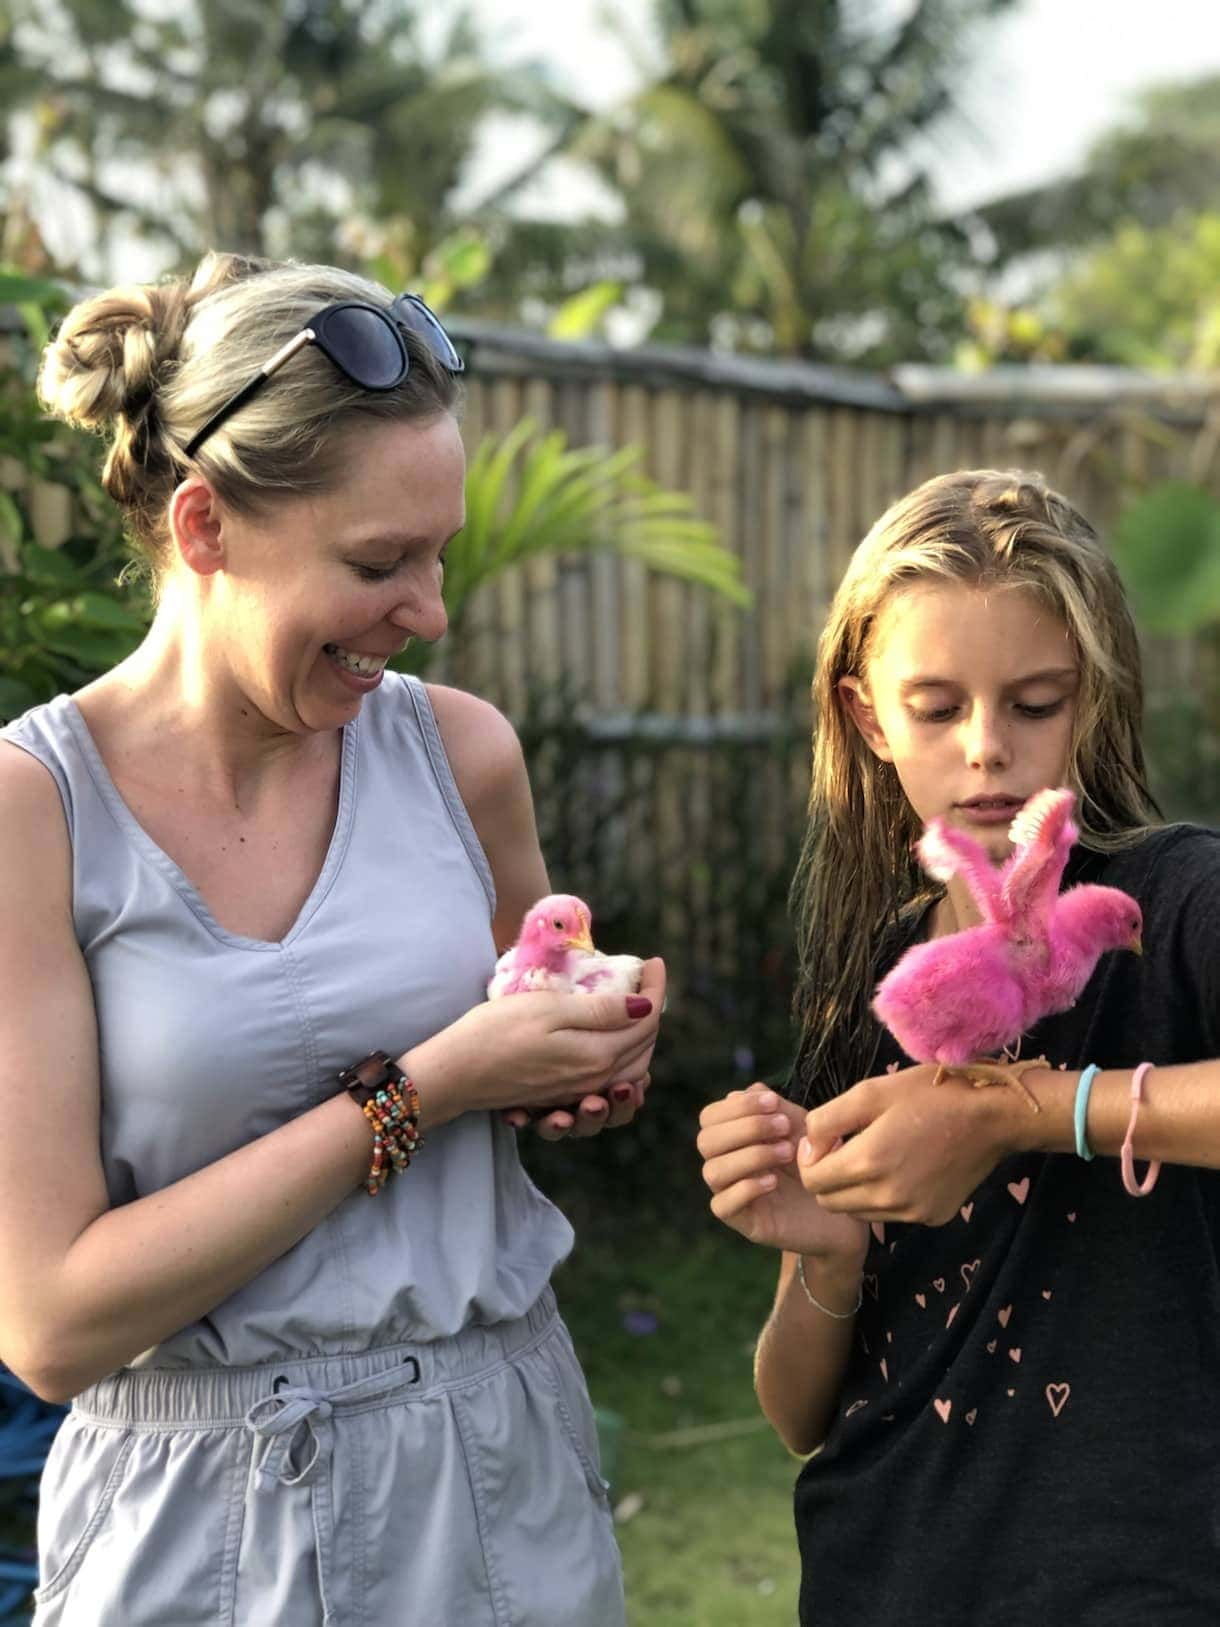 holding pink chickens